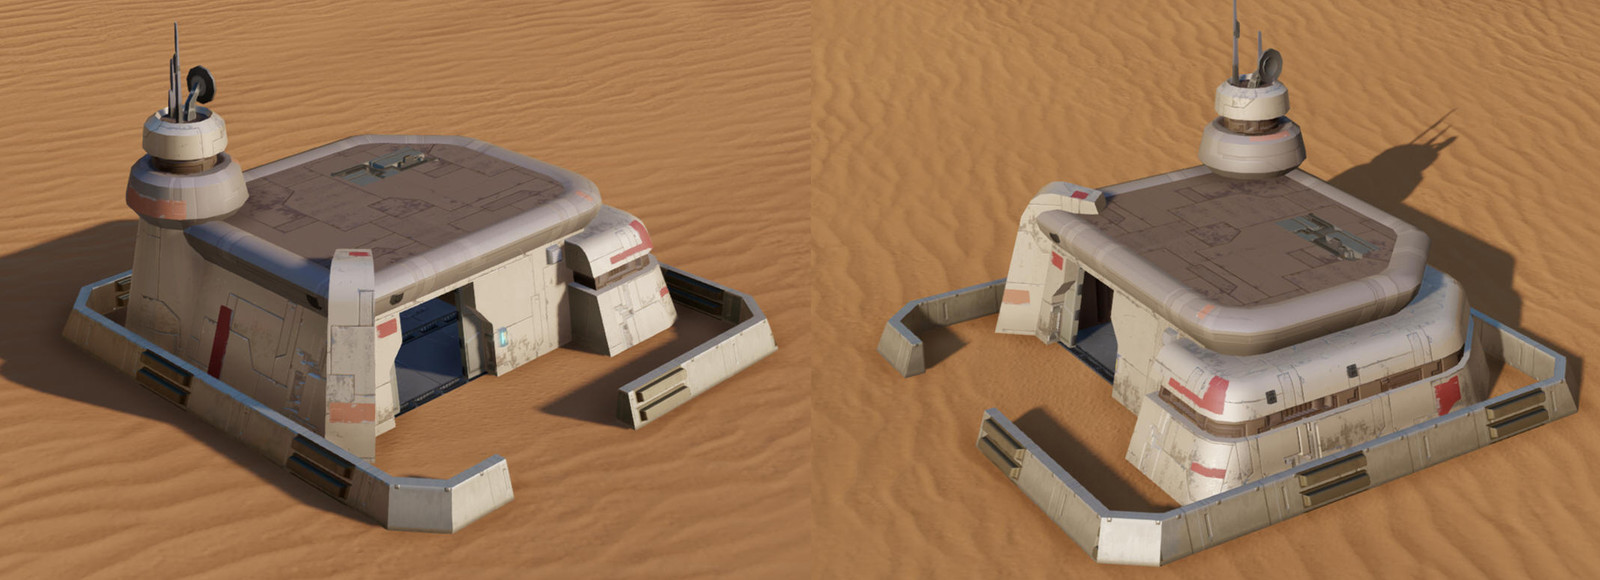 I modeled and textured this bunker unit (running in the SimCity 2013 engine upgraded to support a PBR pipeline)